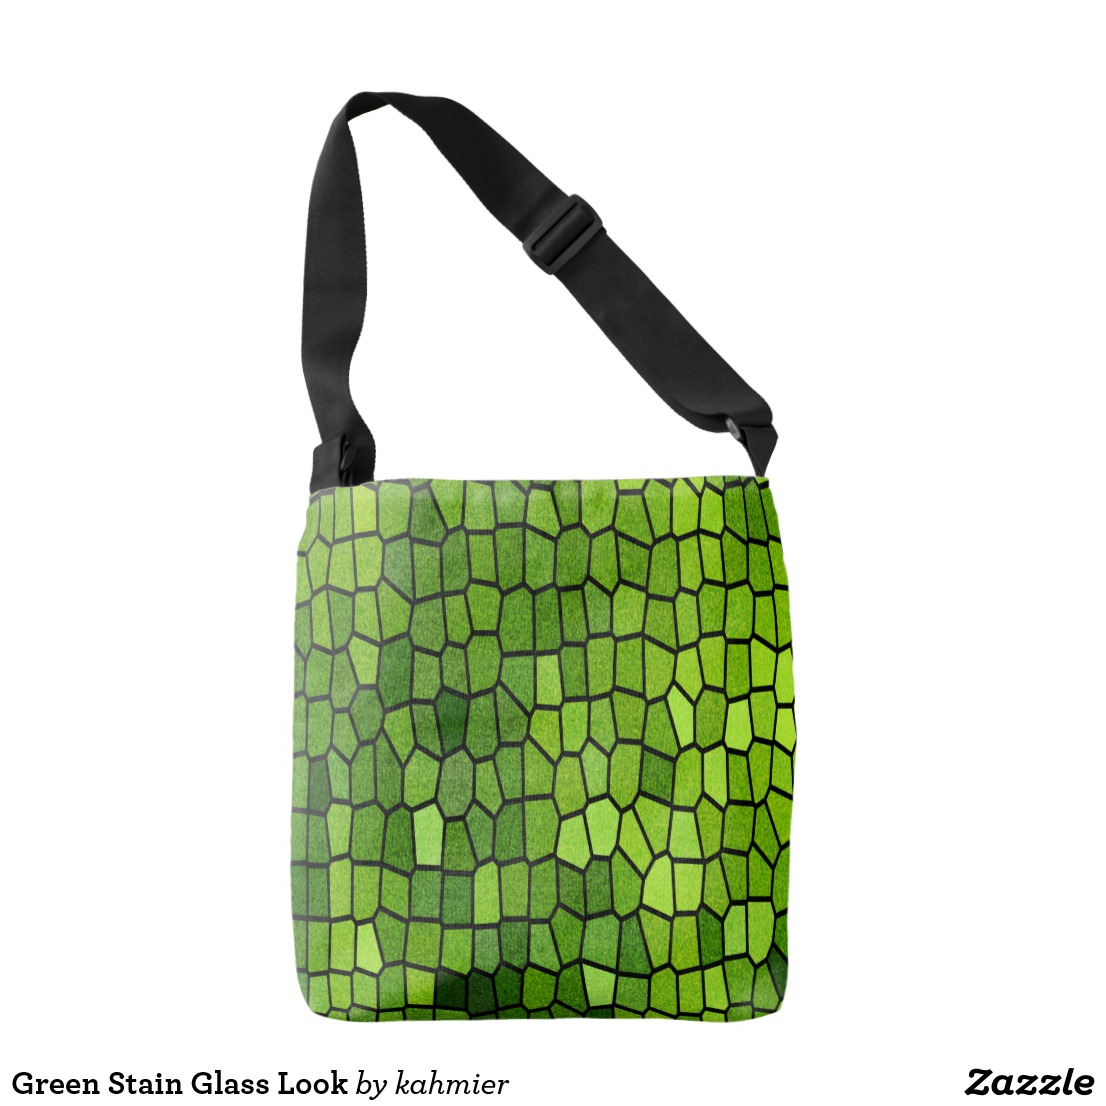 Green Stain Glass Look Crossbody Bag